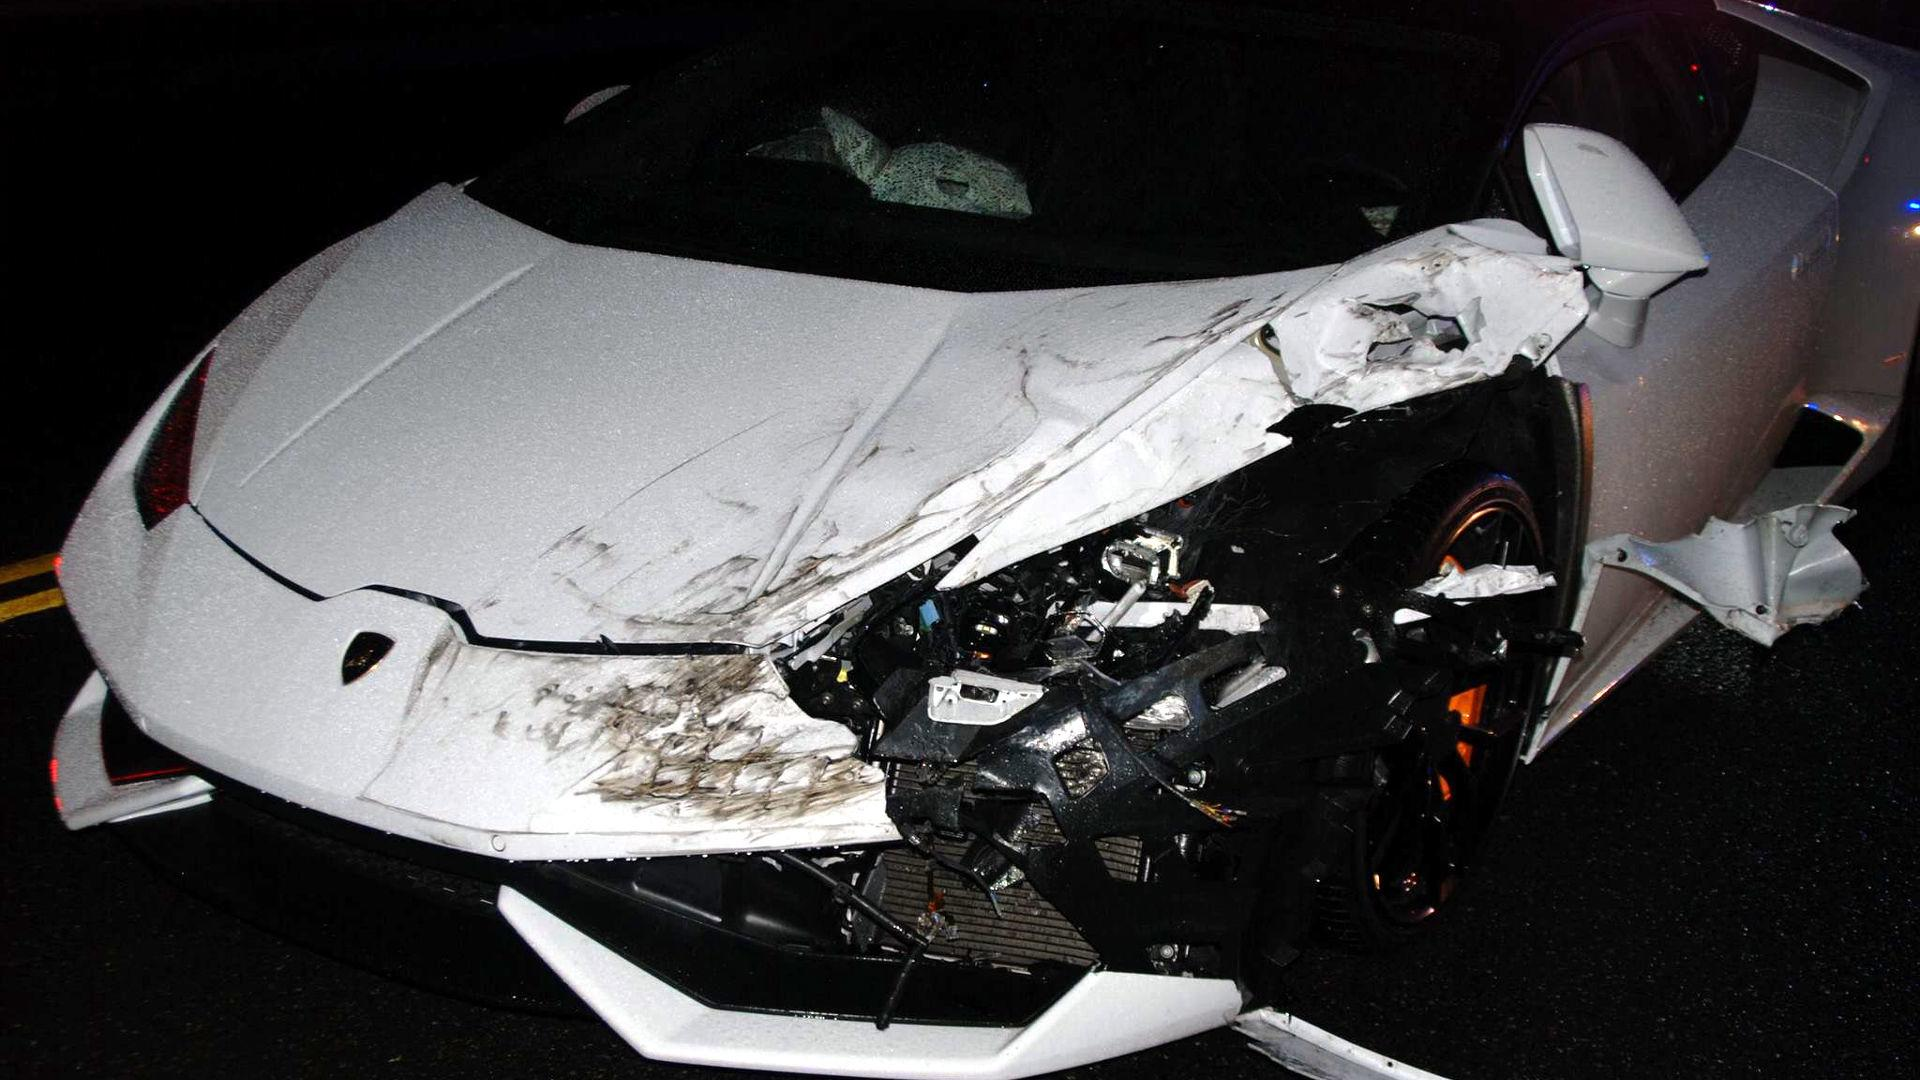 23 Year Old Party Goer Crashes Rented Lamborghini In